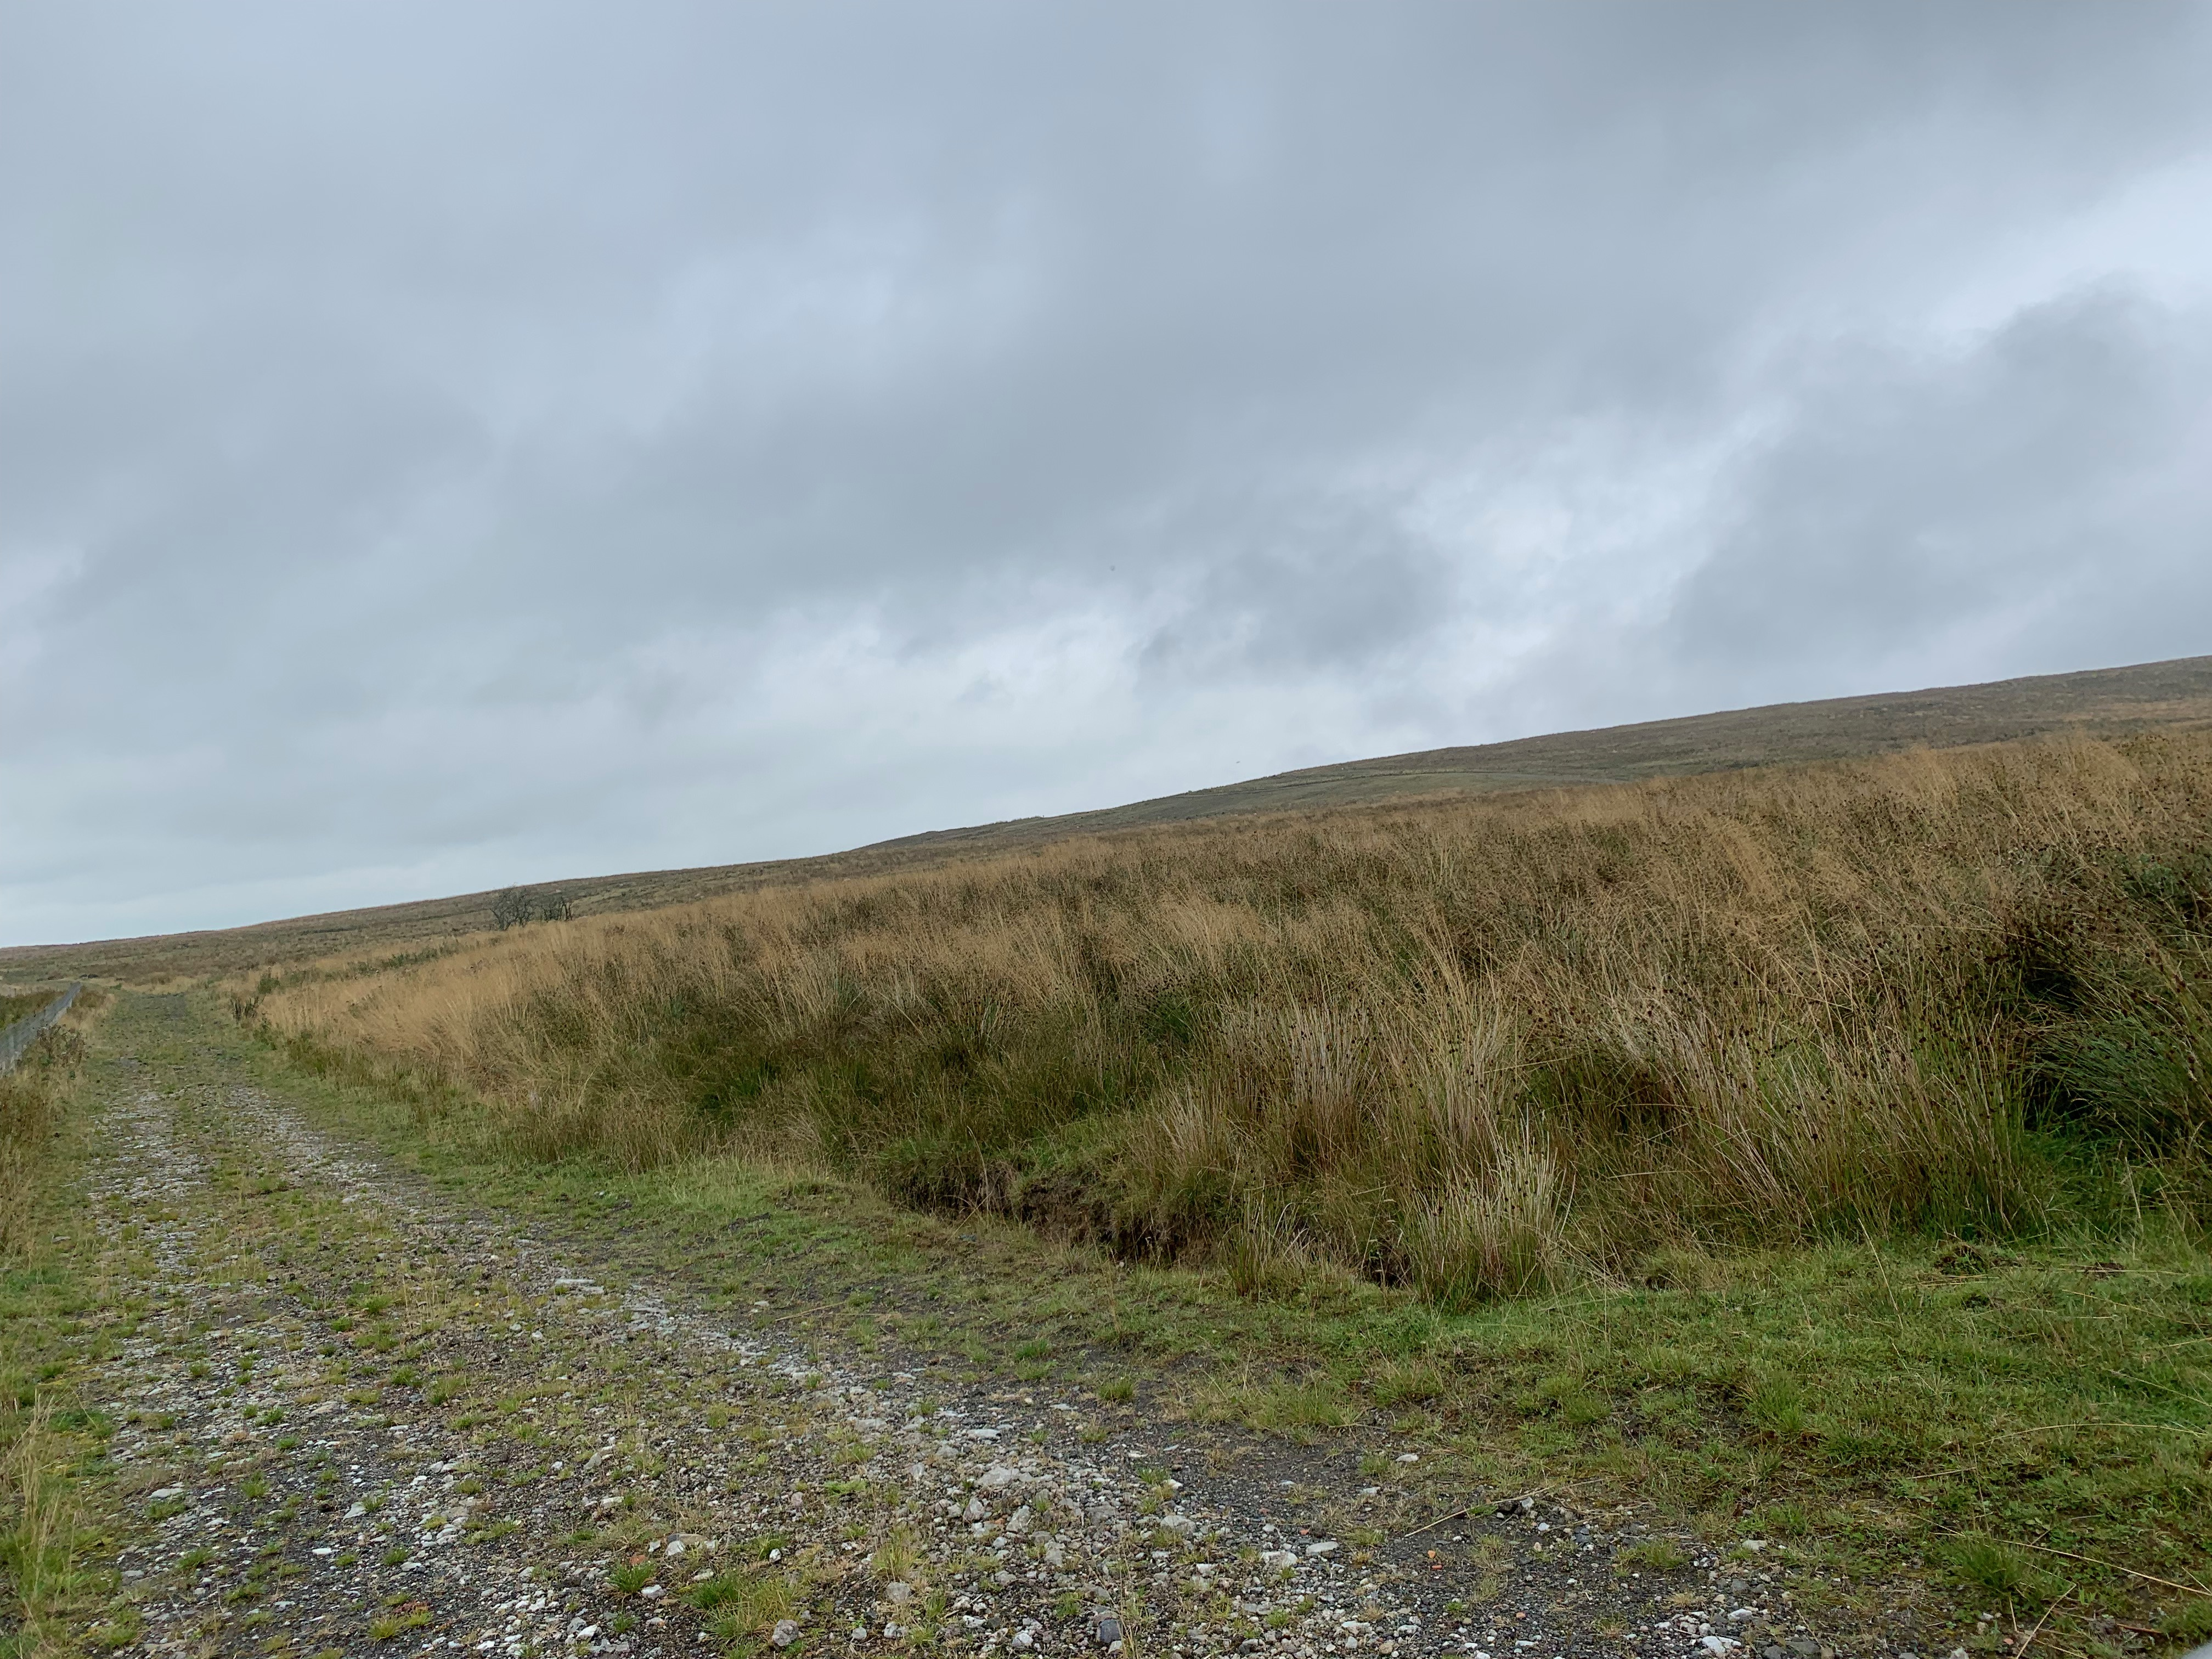 a track into the hills with grass on the right hand side